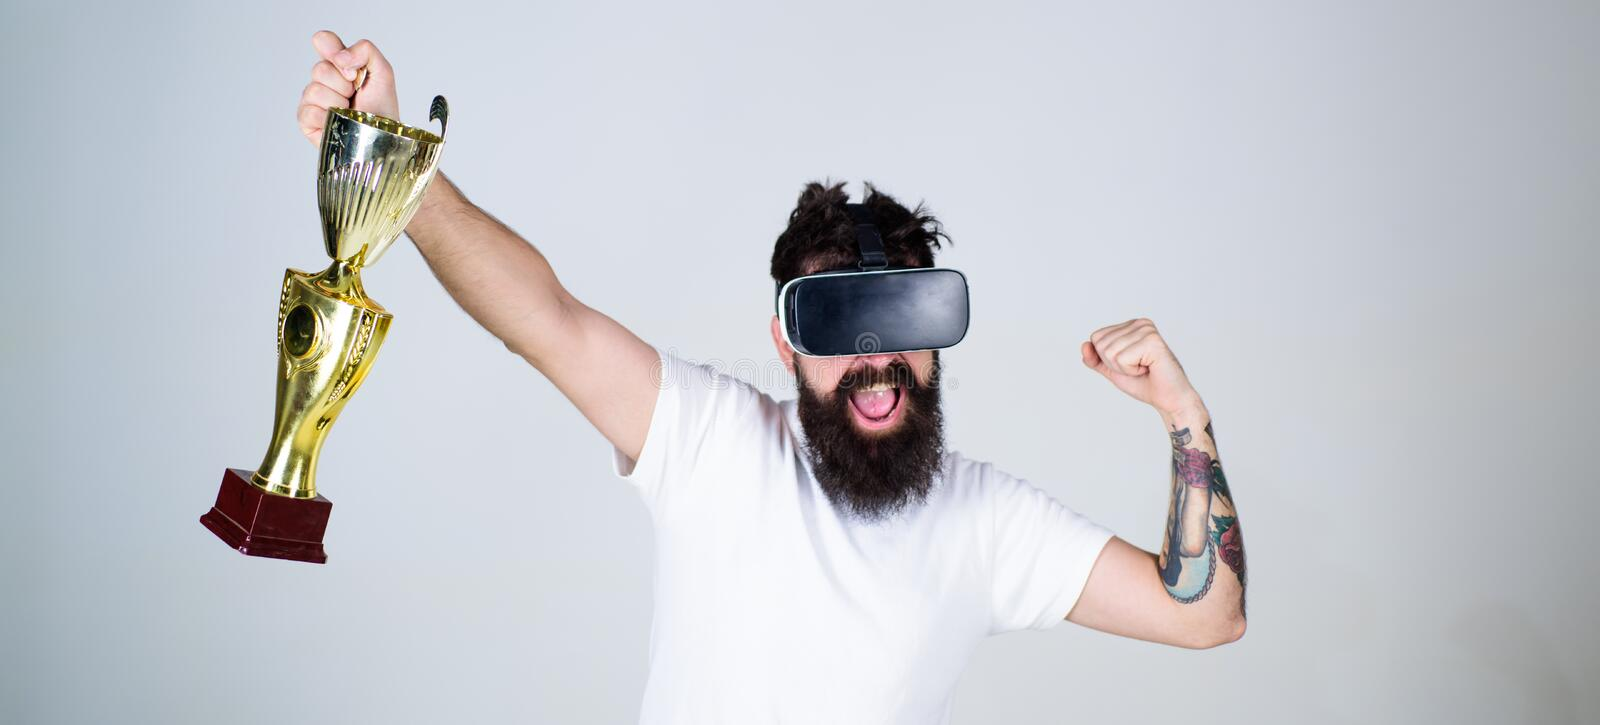 Hipster on happy face squeezing fist as successful gesture. Guy with head mounted display won in virtual game. Champion royalty free stock photography